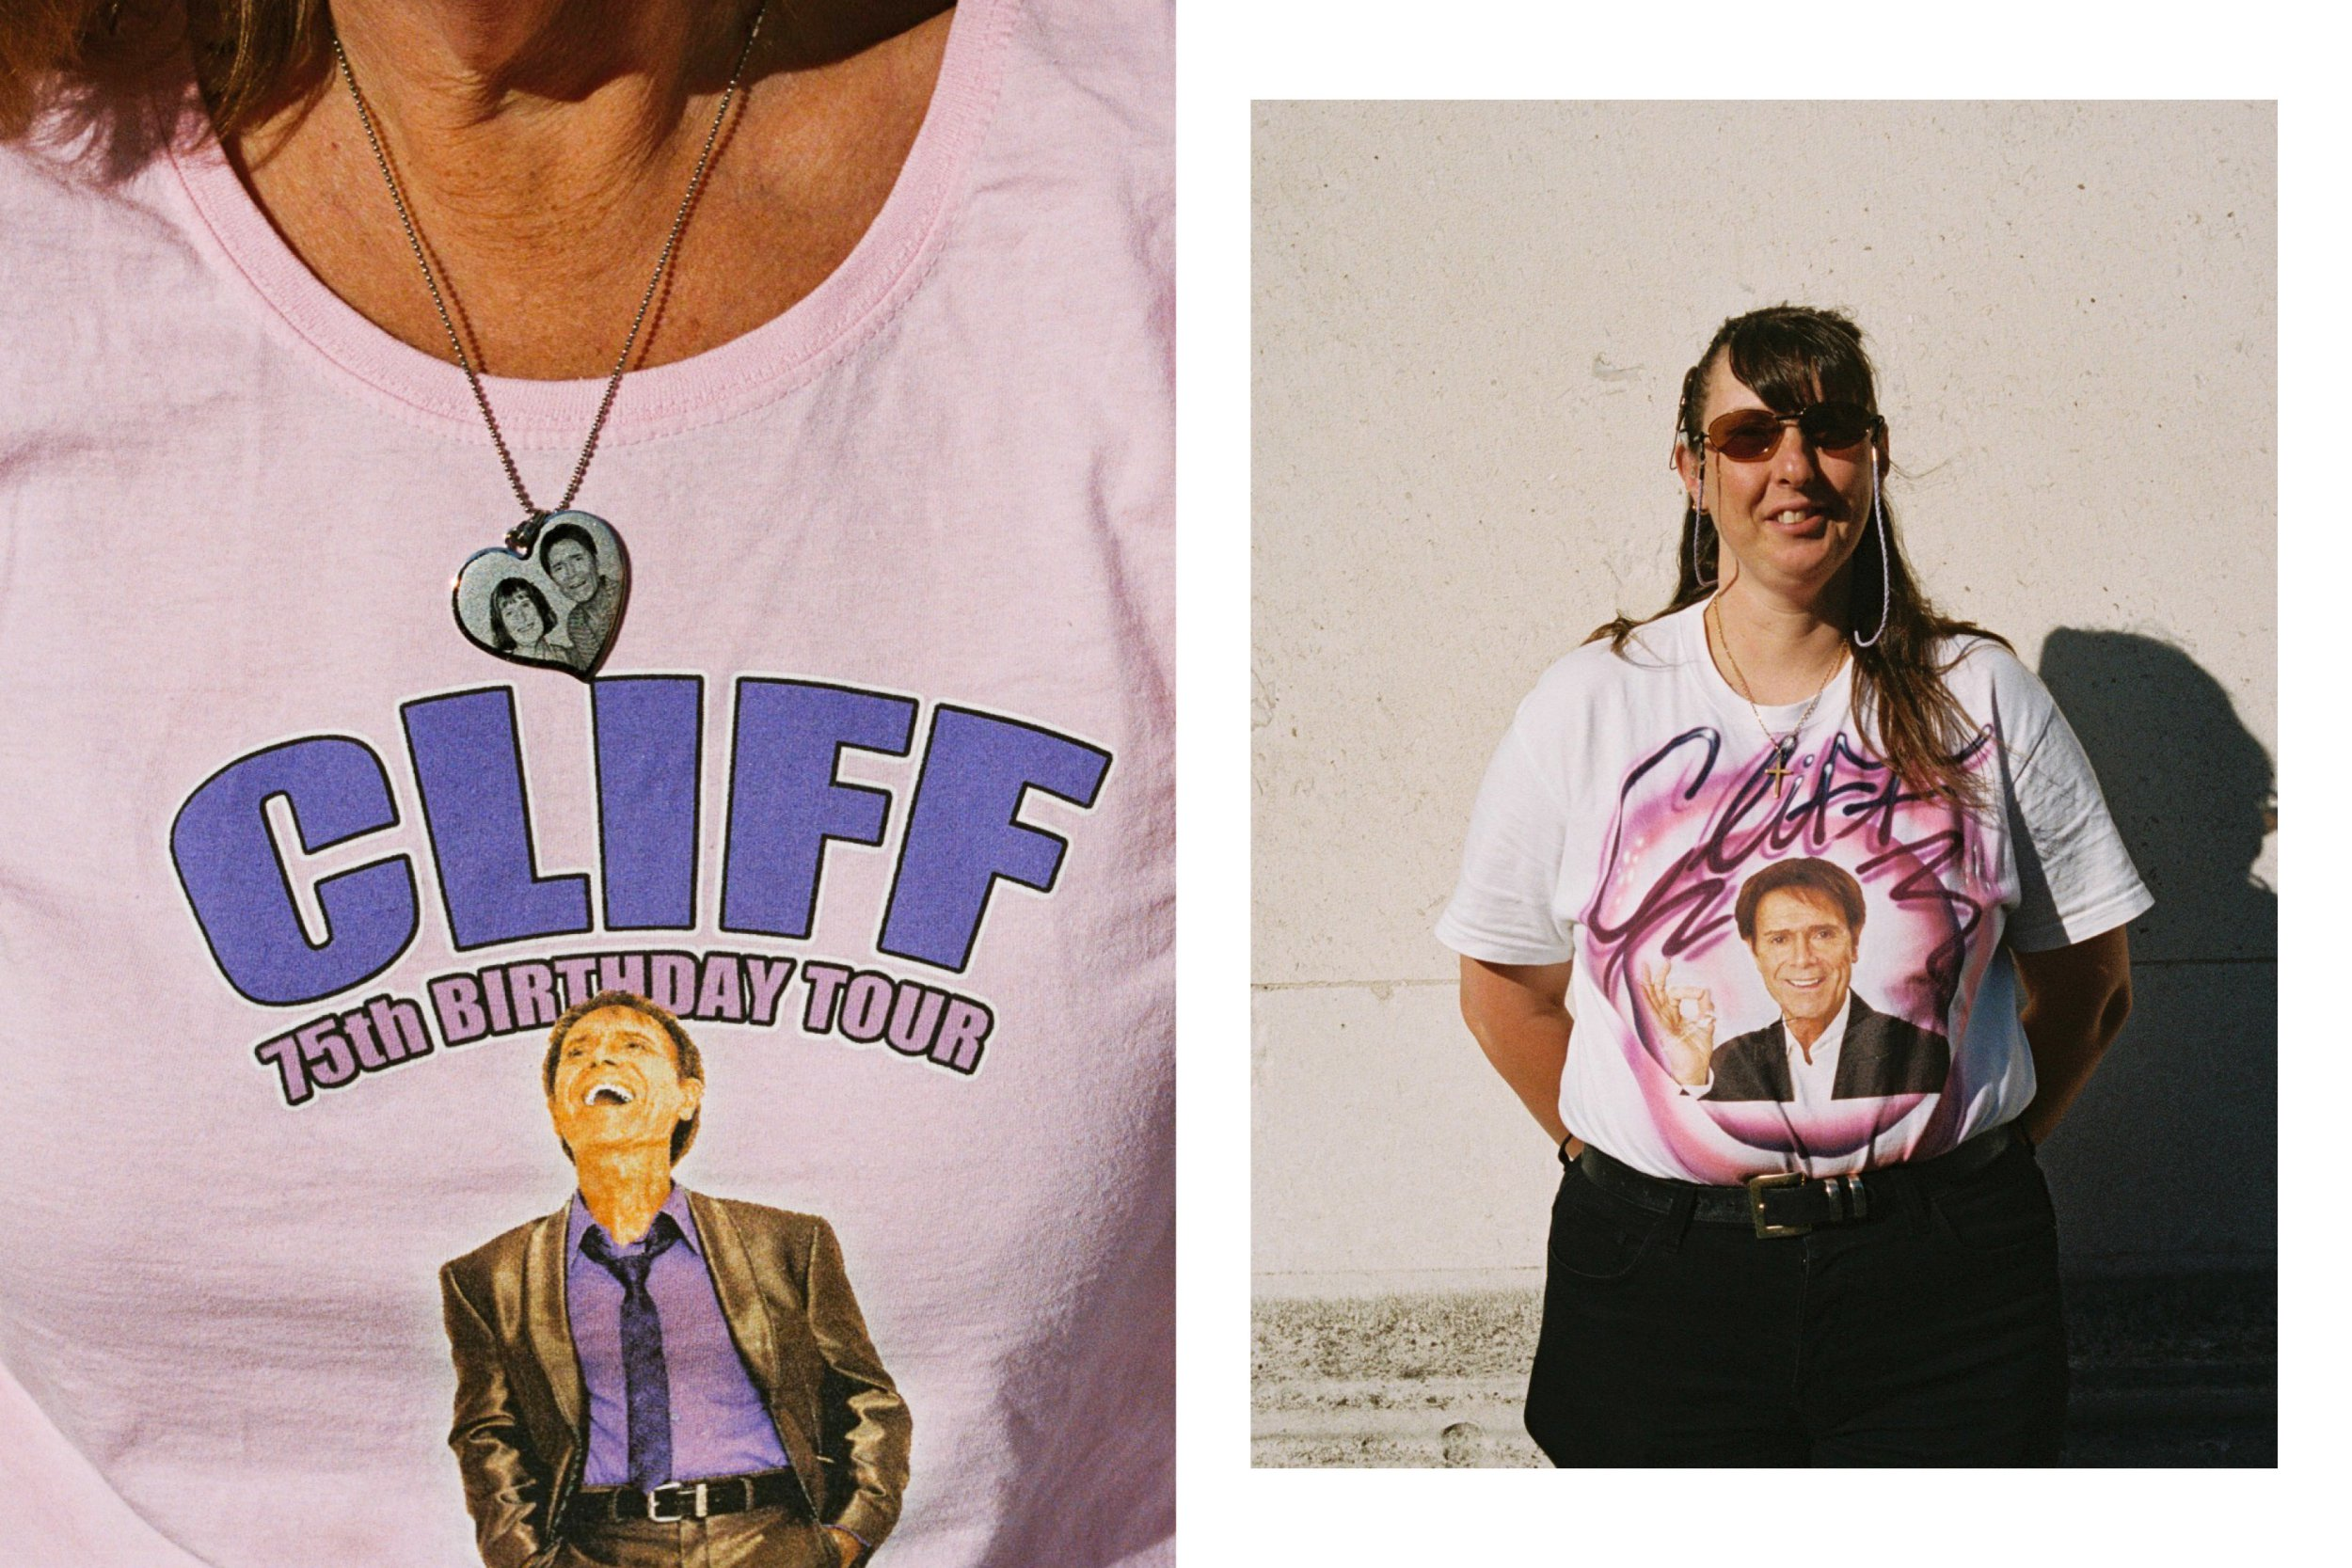 Robin Mellor photographs Cliff Richard's colourful fanbase outside his Fabulous Rock n Roll concert in Greenwich, South East London